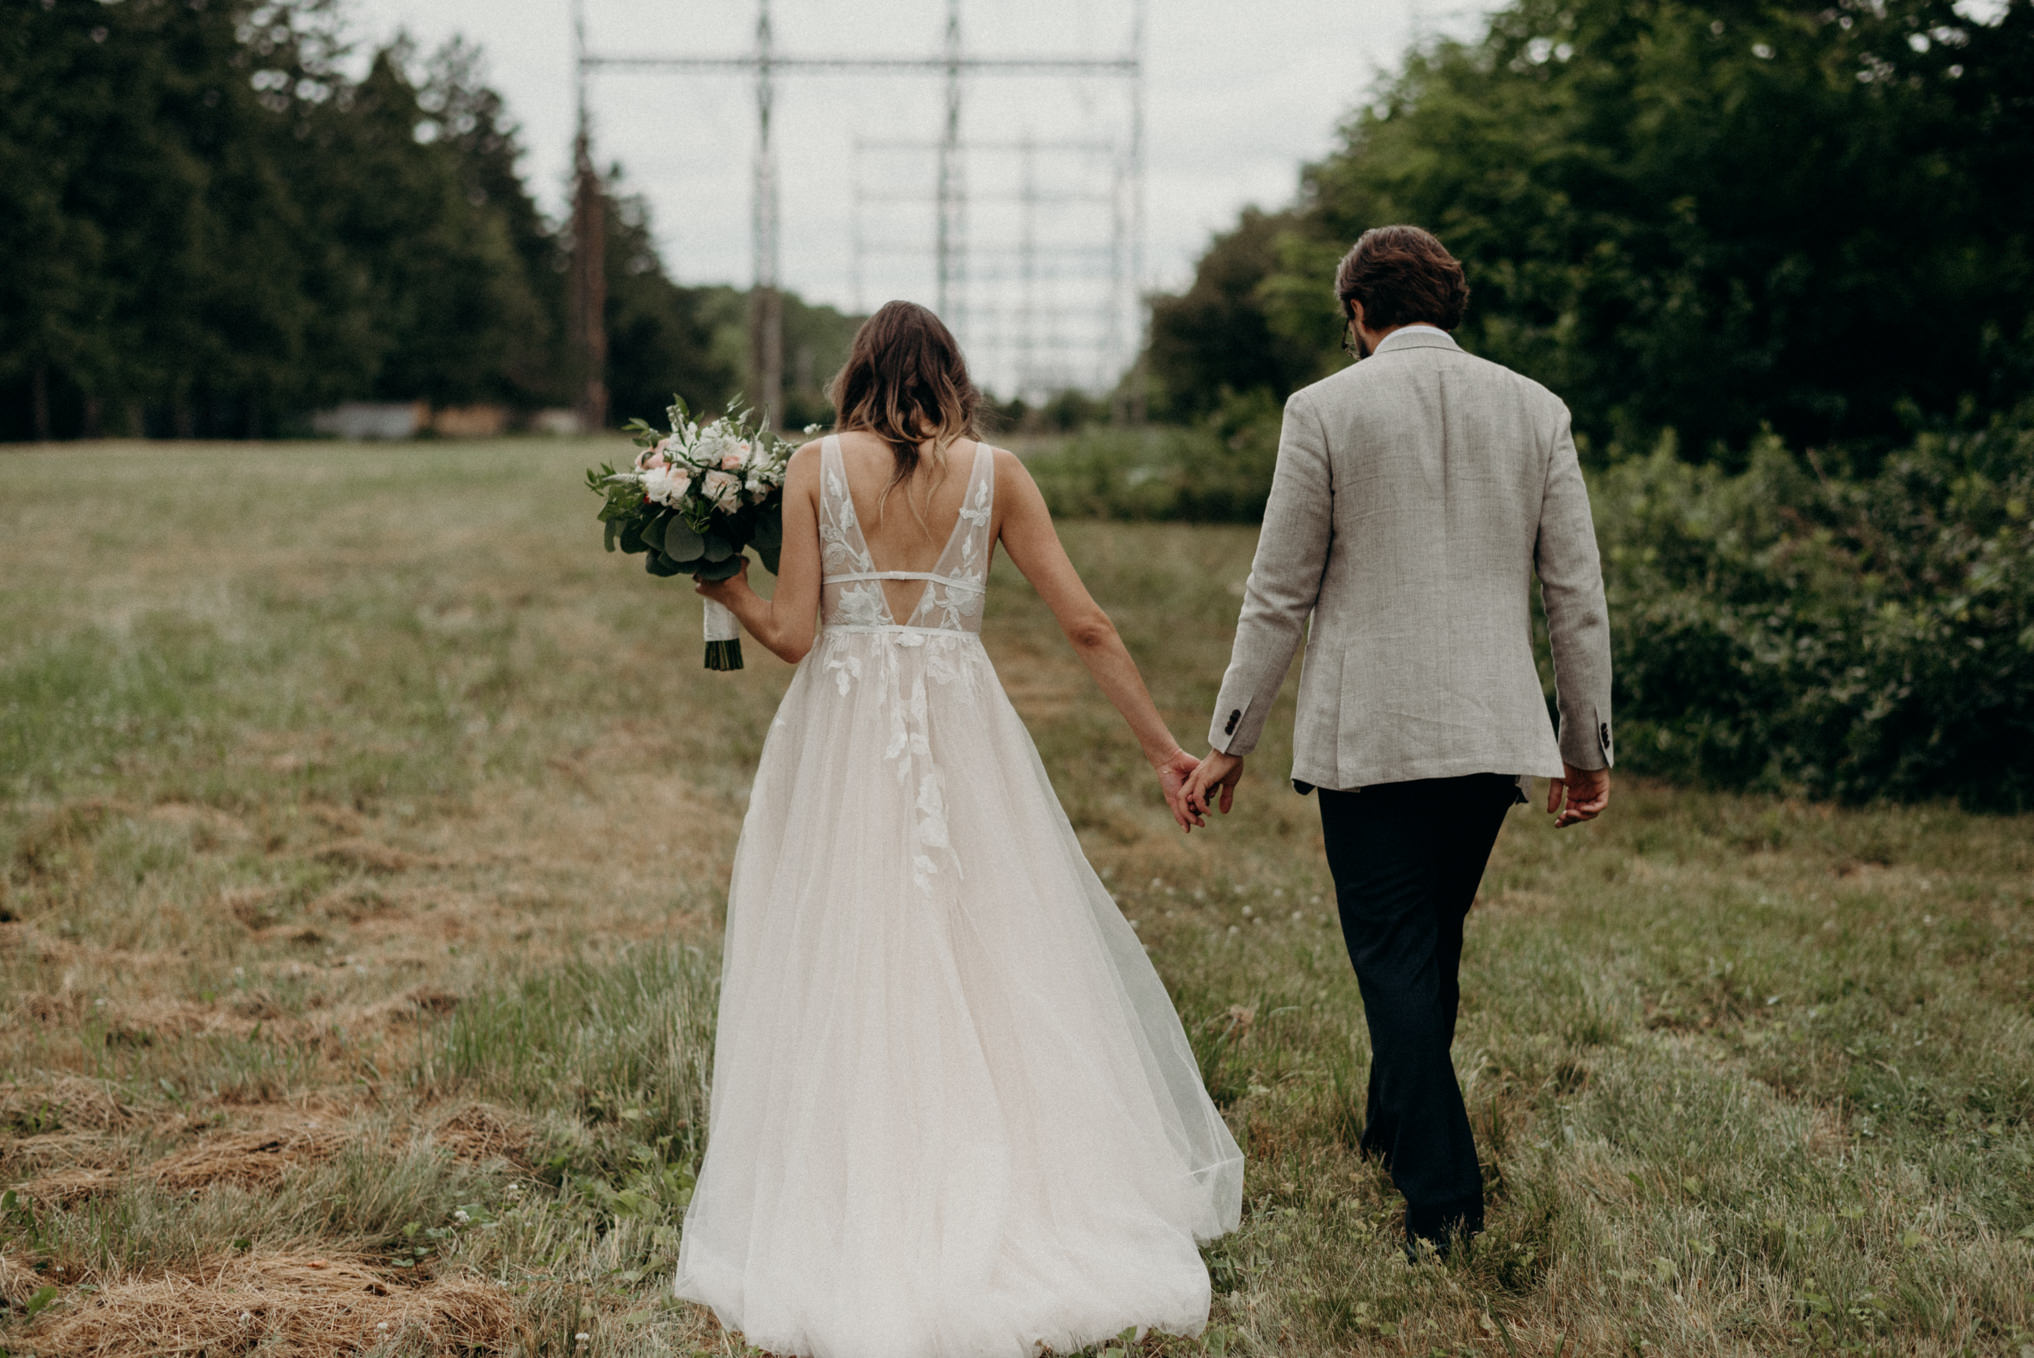 bride and groom walking holding hands in field